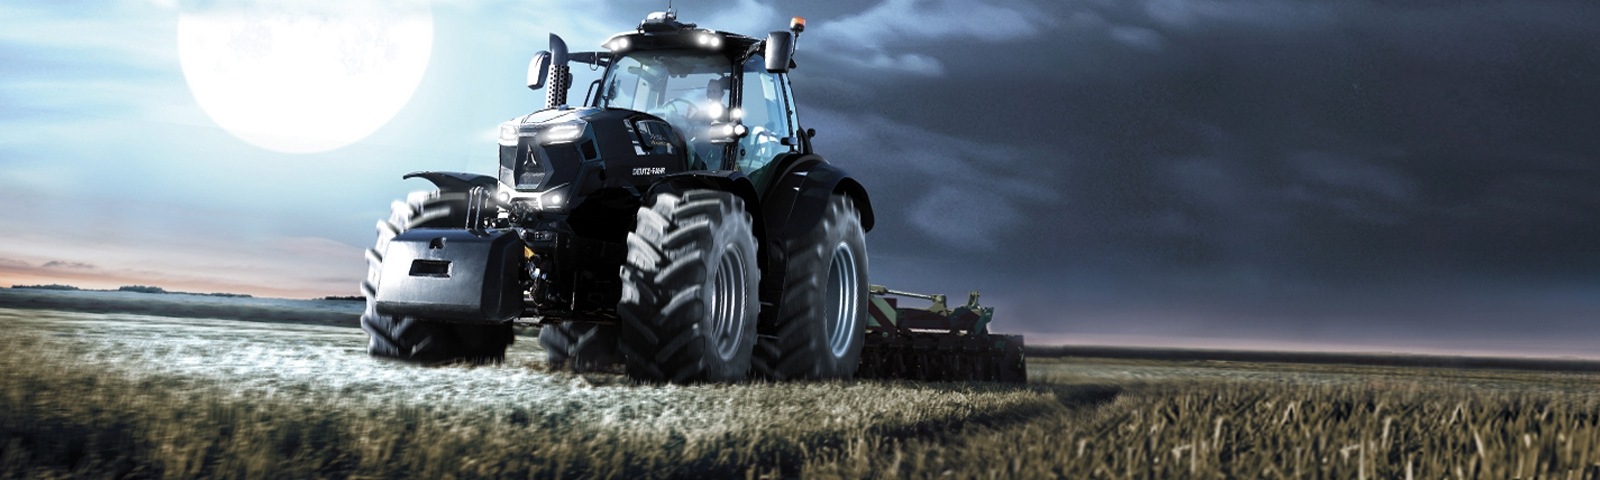 Deutz-Fahr 7250 TTV Warrior - 2